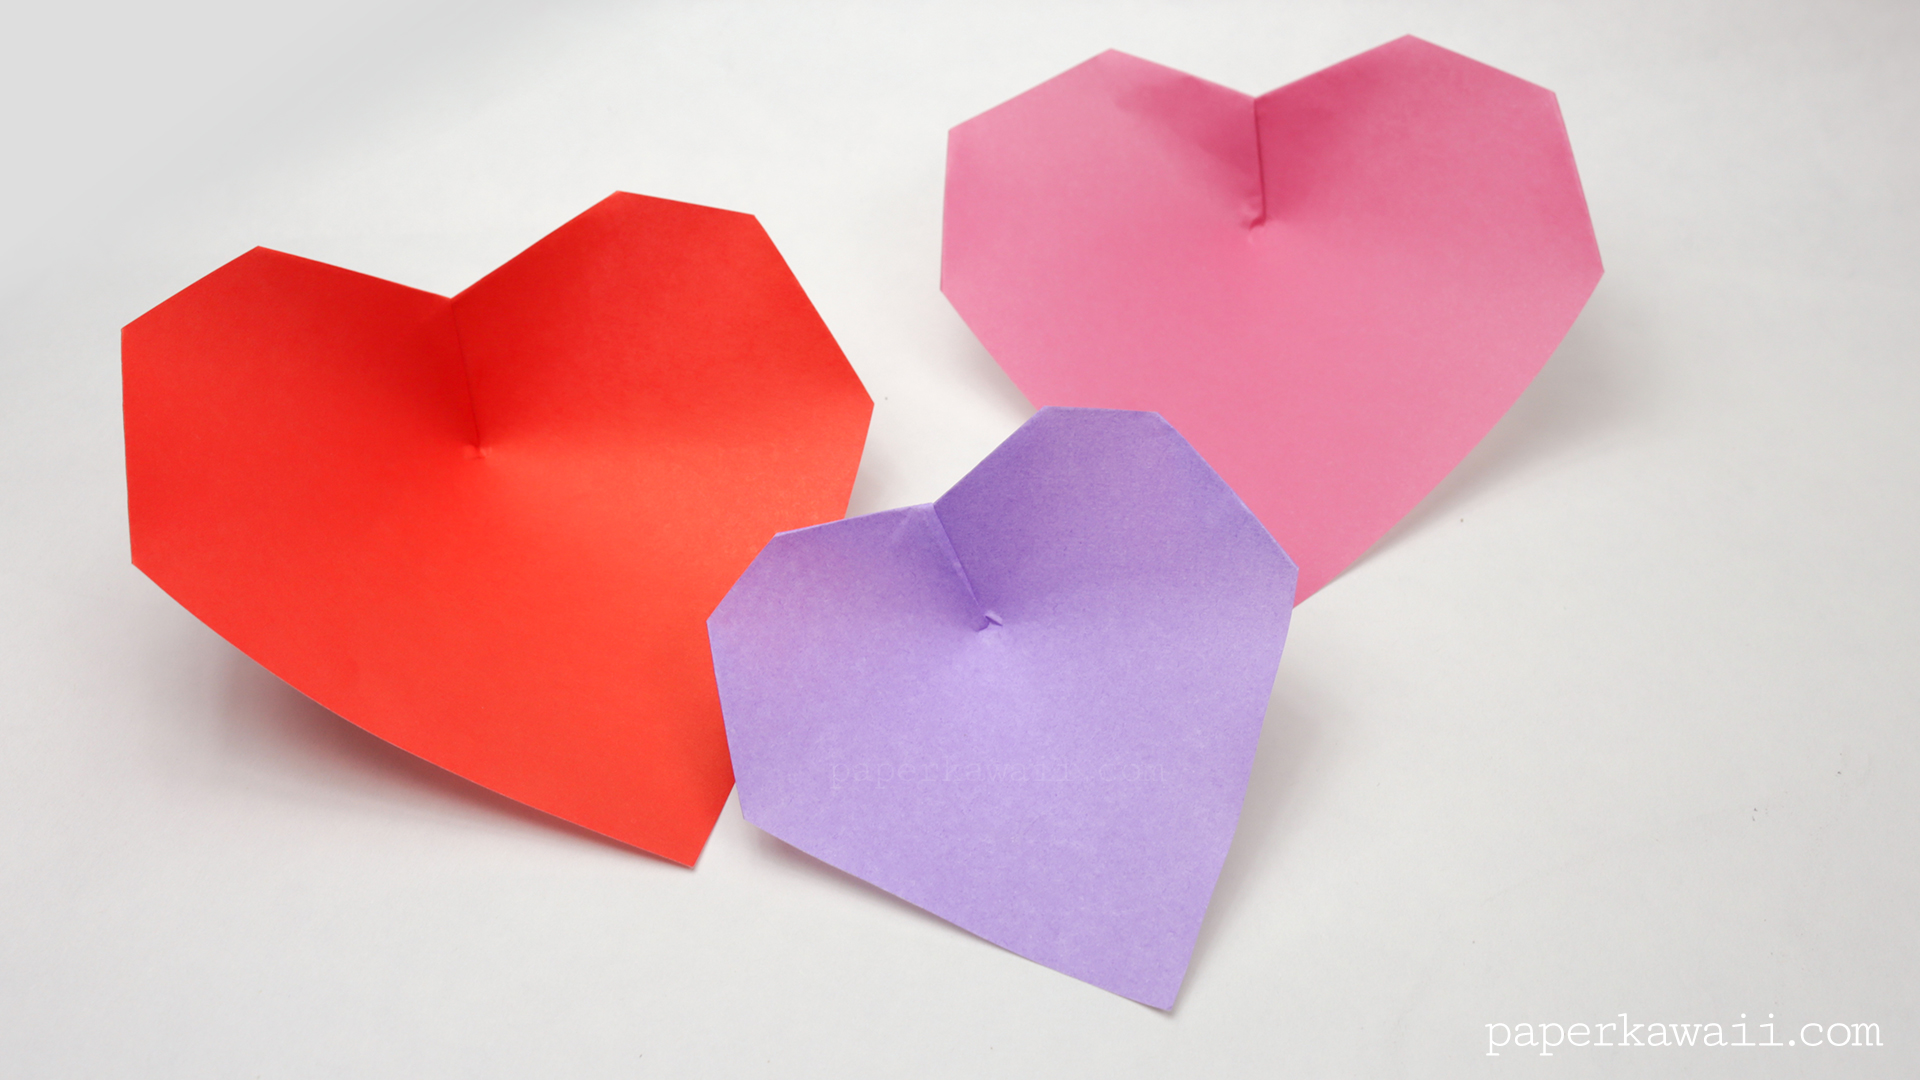 Super easy origami heart instructions paper kawaii you might want to use a dab of glue but not necessary super easy origami heart instructions jeuxipadfo Image collections